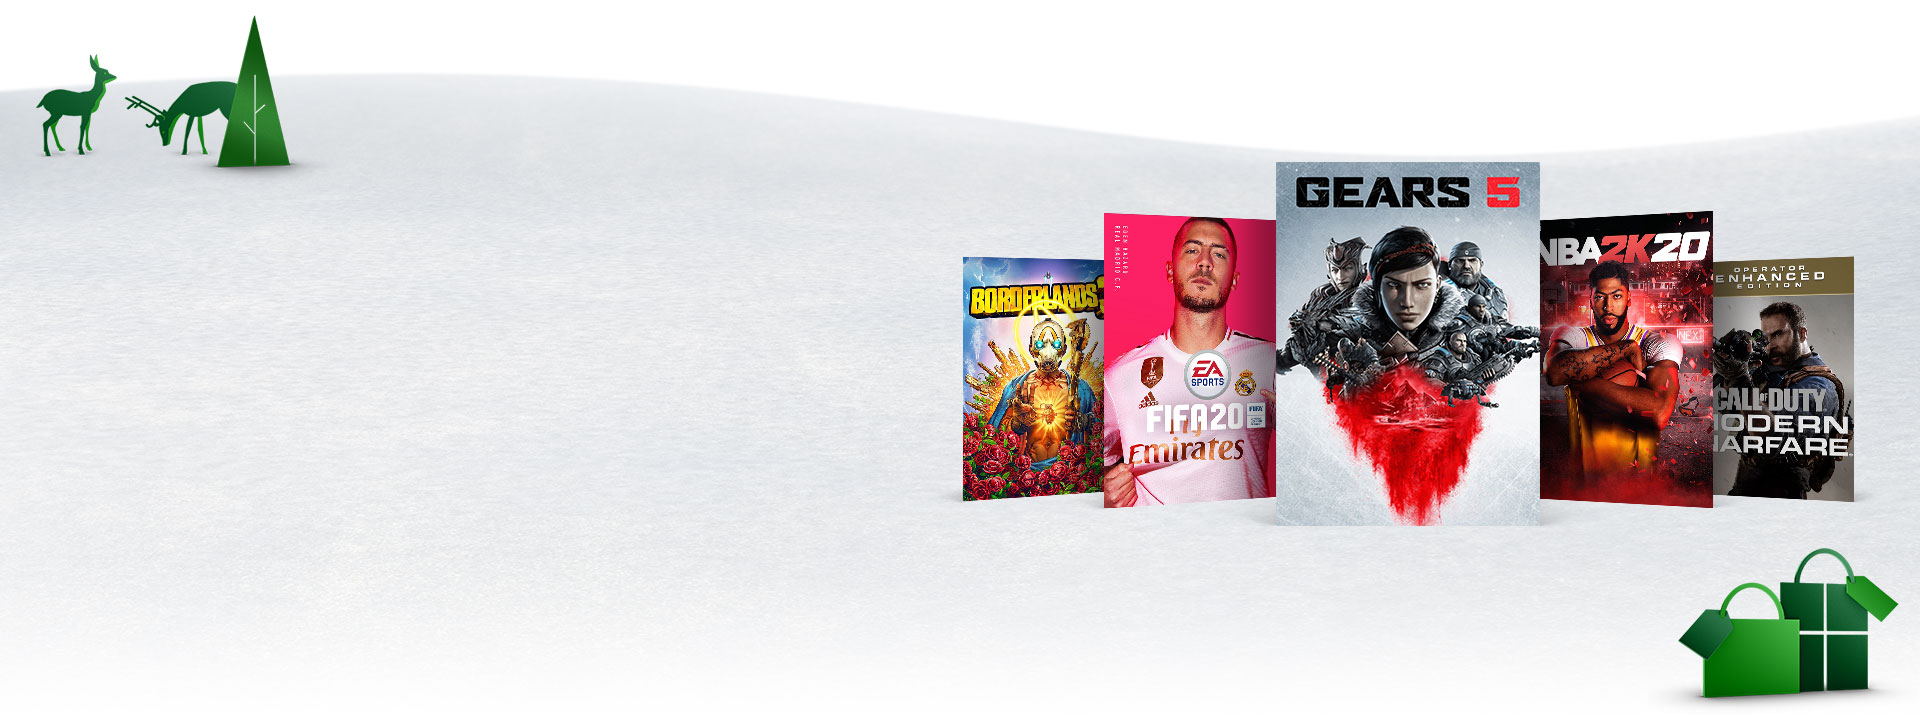 Box art for Xbox One games on sale, featured in a snowy scene. Gears 5, FIFA 20, NBA 2K20, Borderlands 3, Call of Duty: Modern Warfare